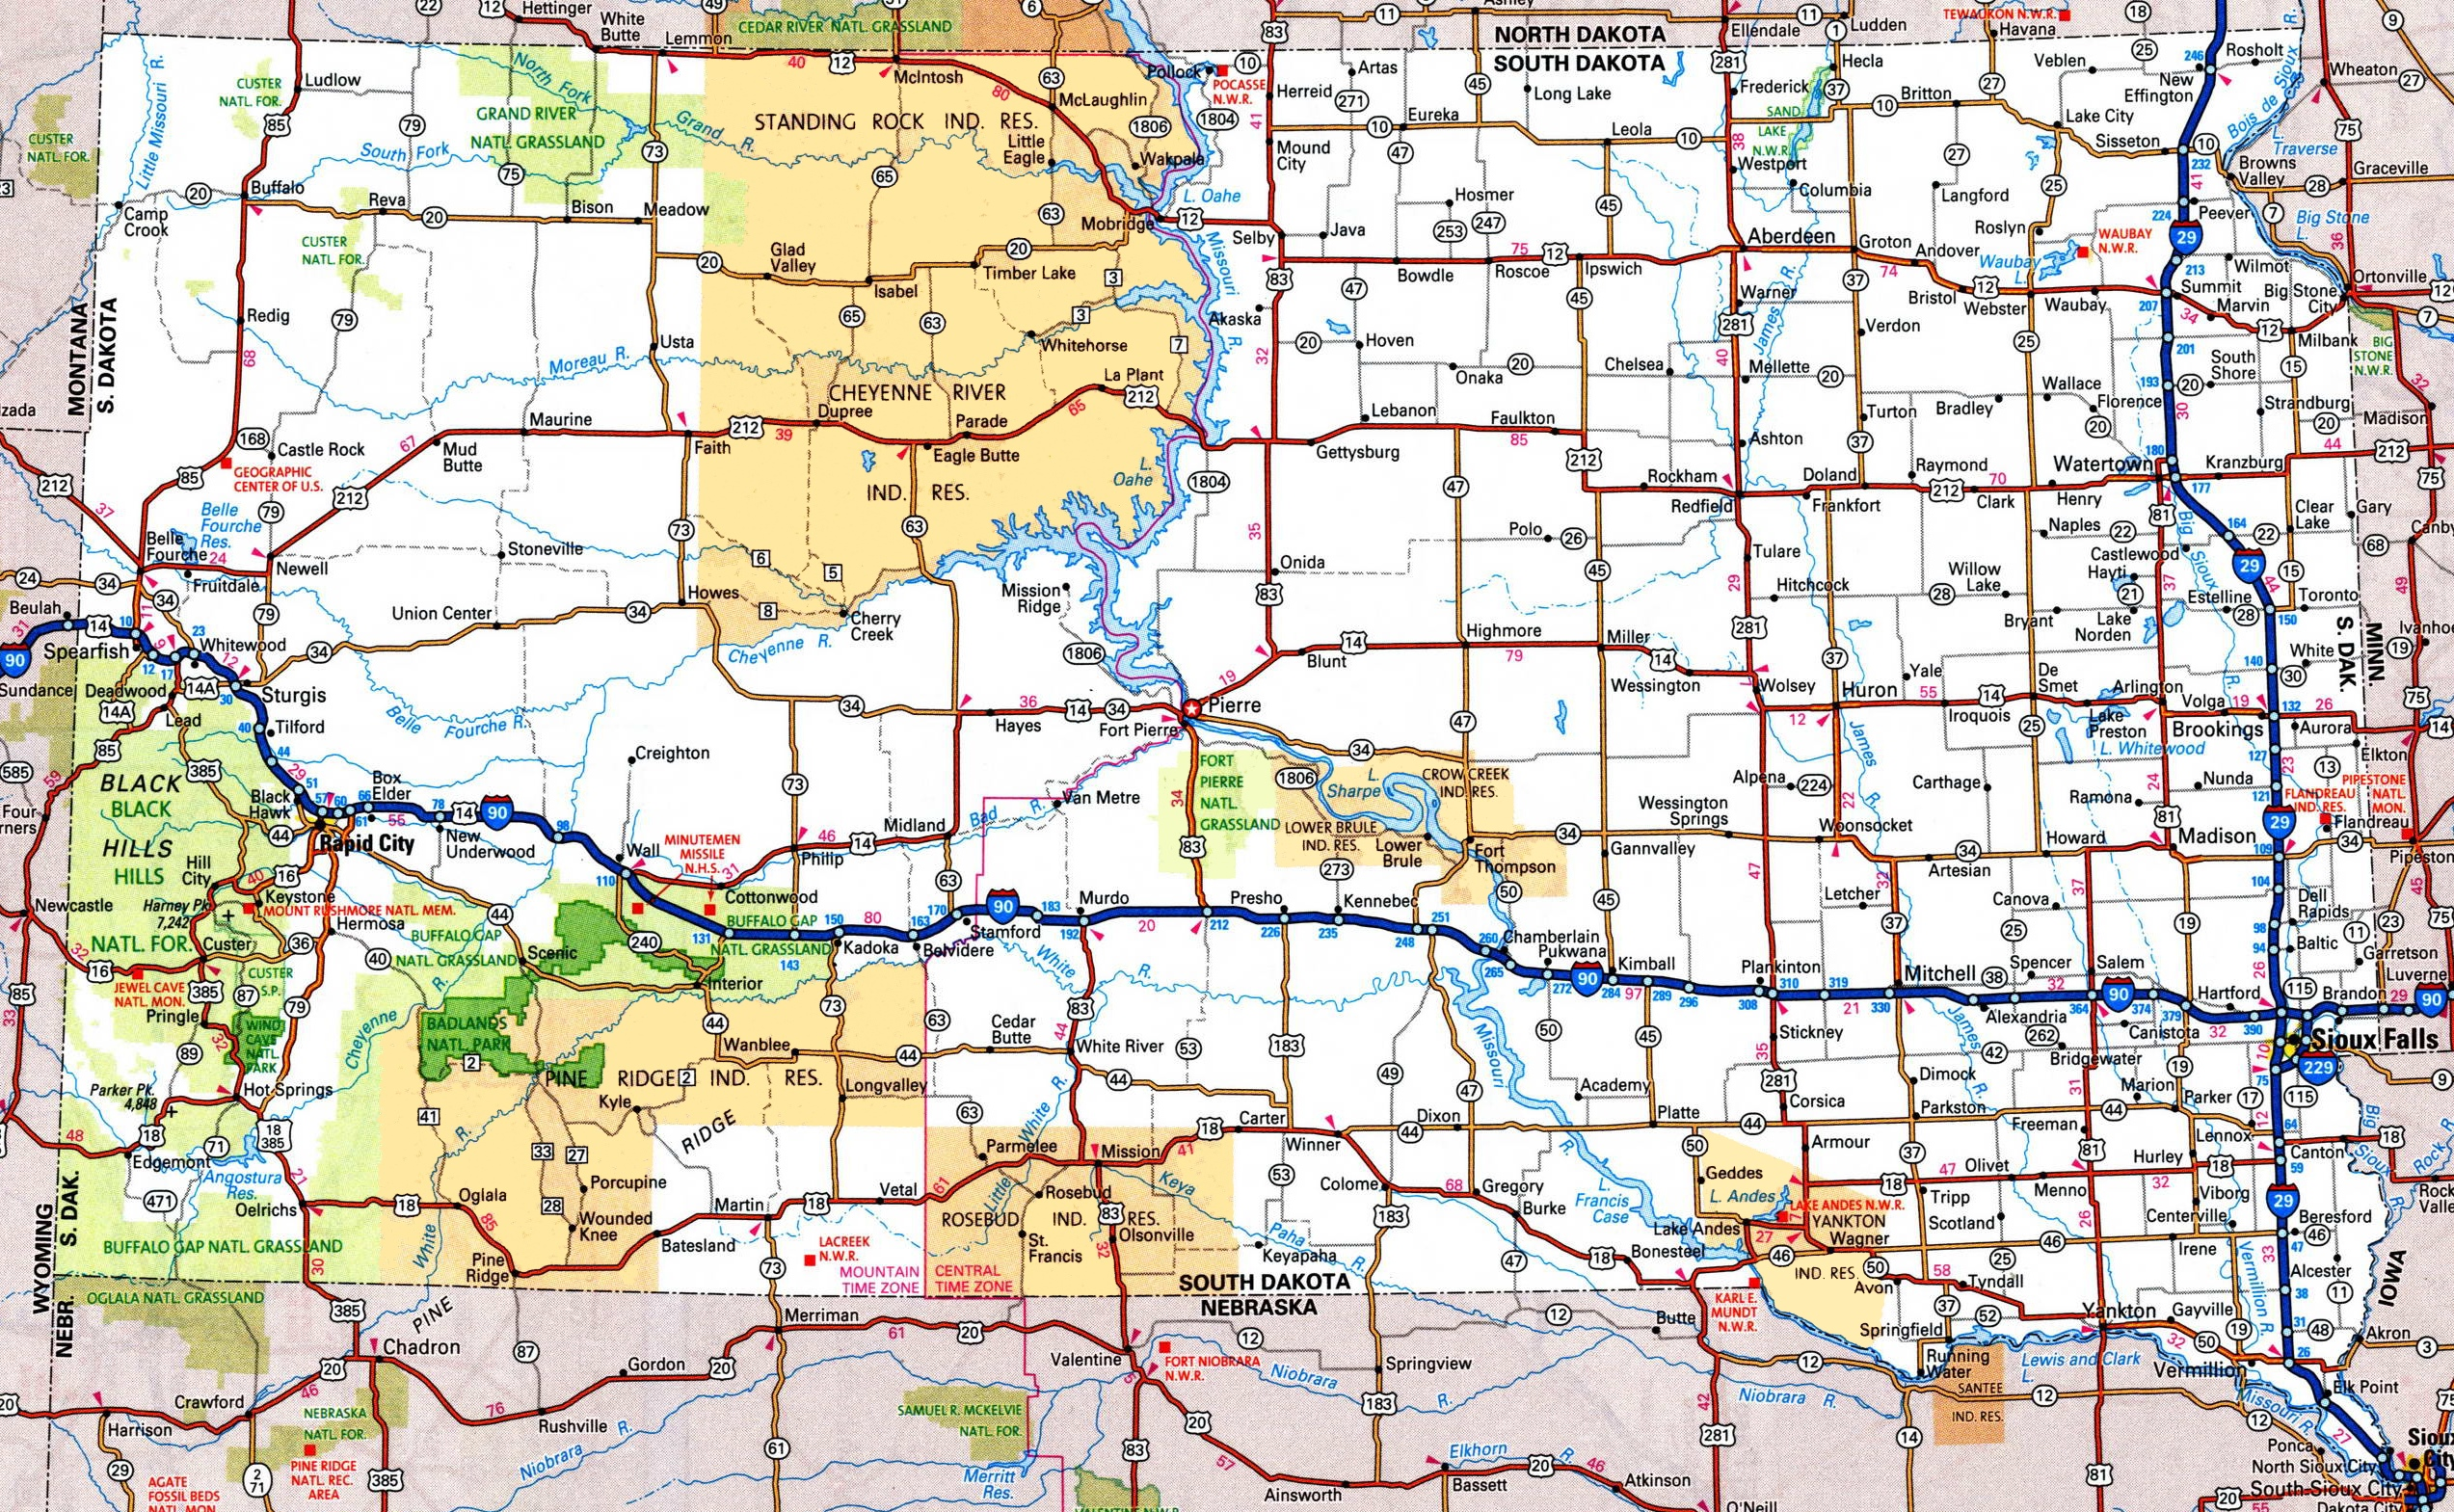 South Dakota road map on print map of states, print map of ontario canada, print map of oklahoma city, print map of st. augustine, print map of philadelphia, print map of houston,